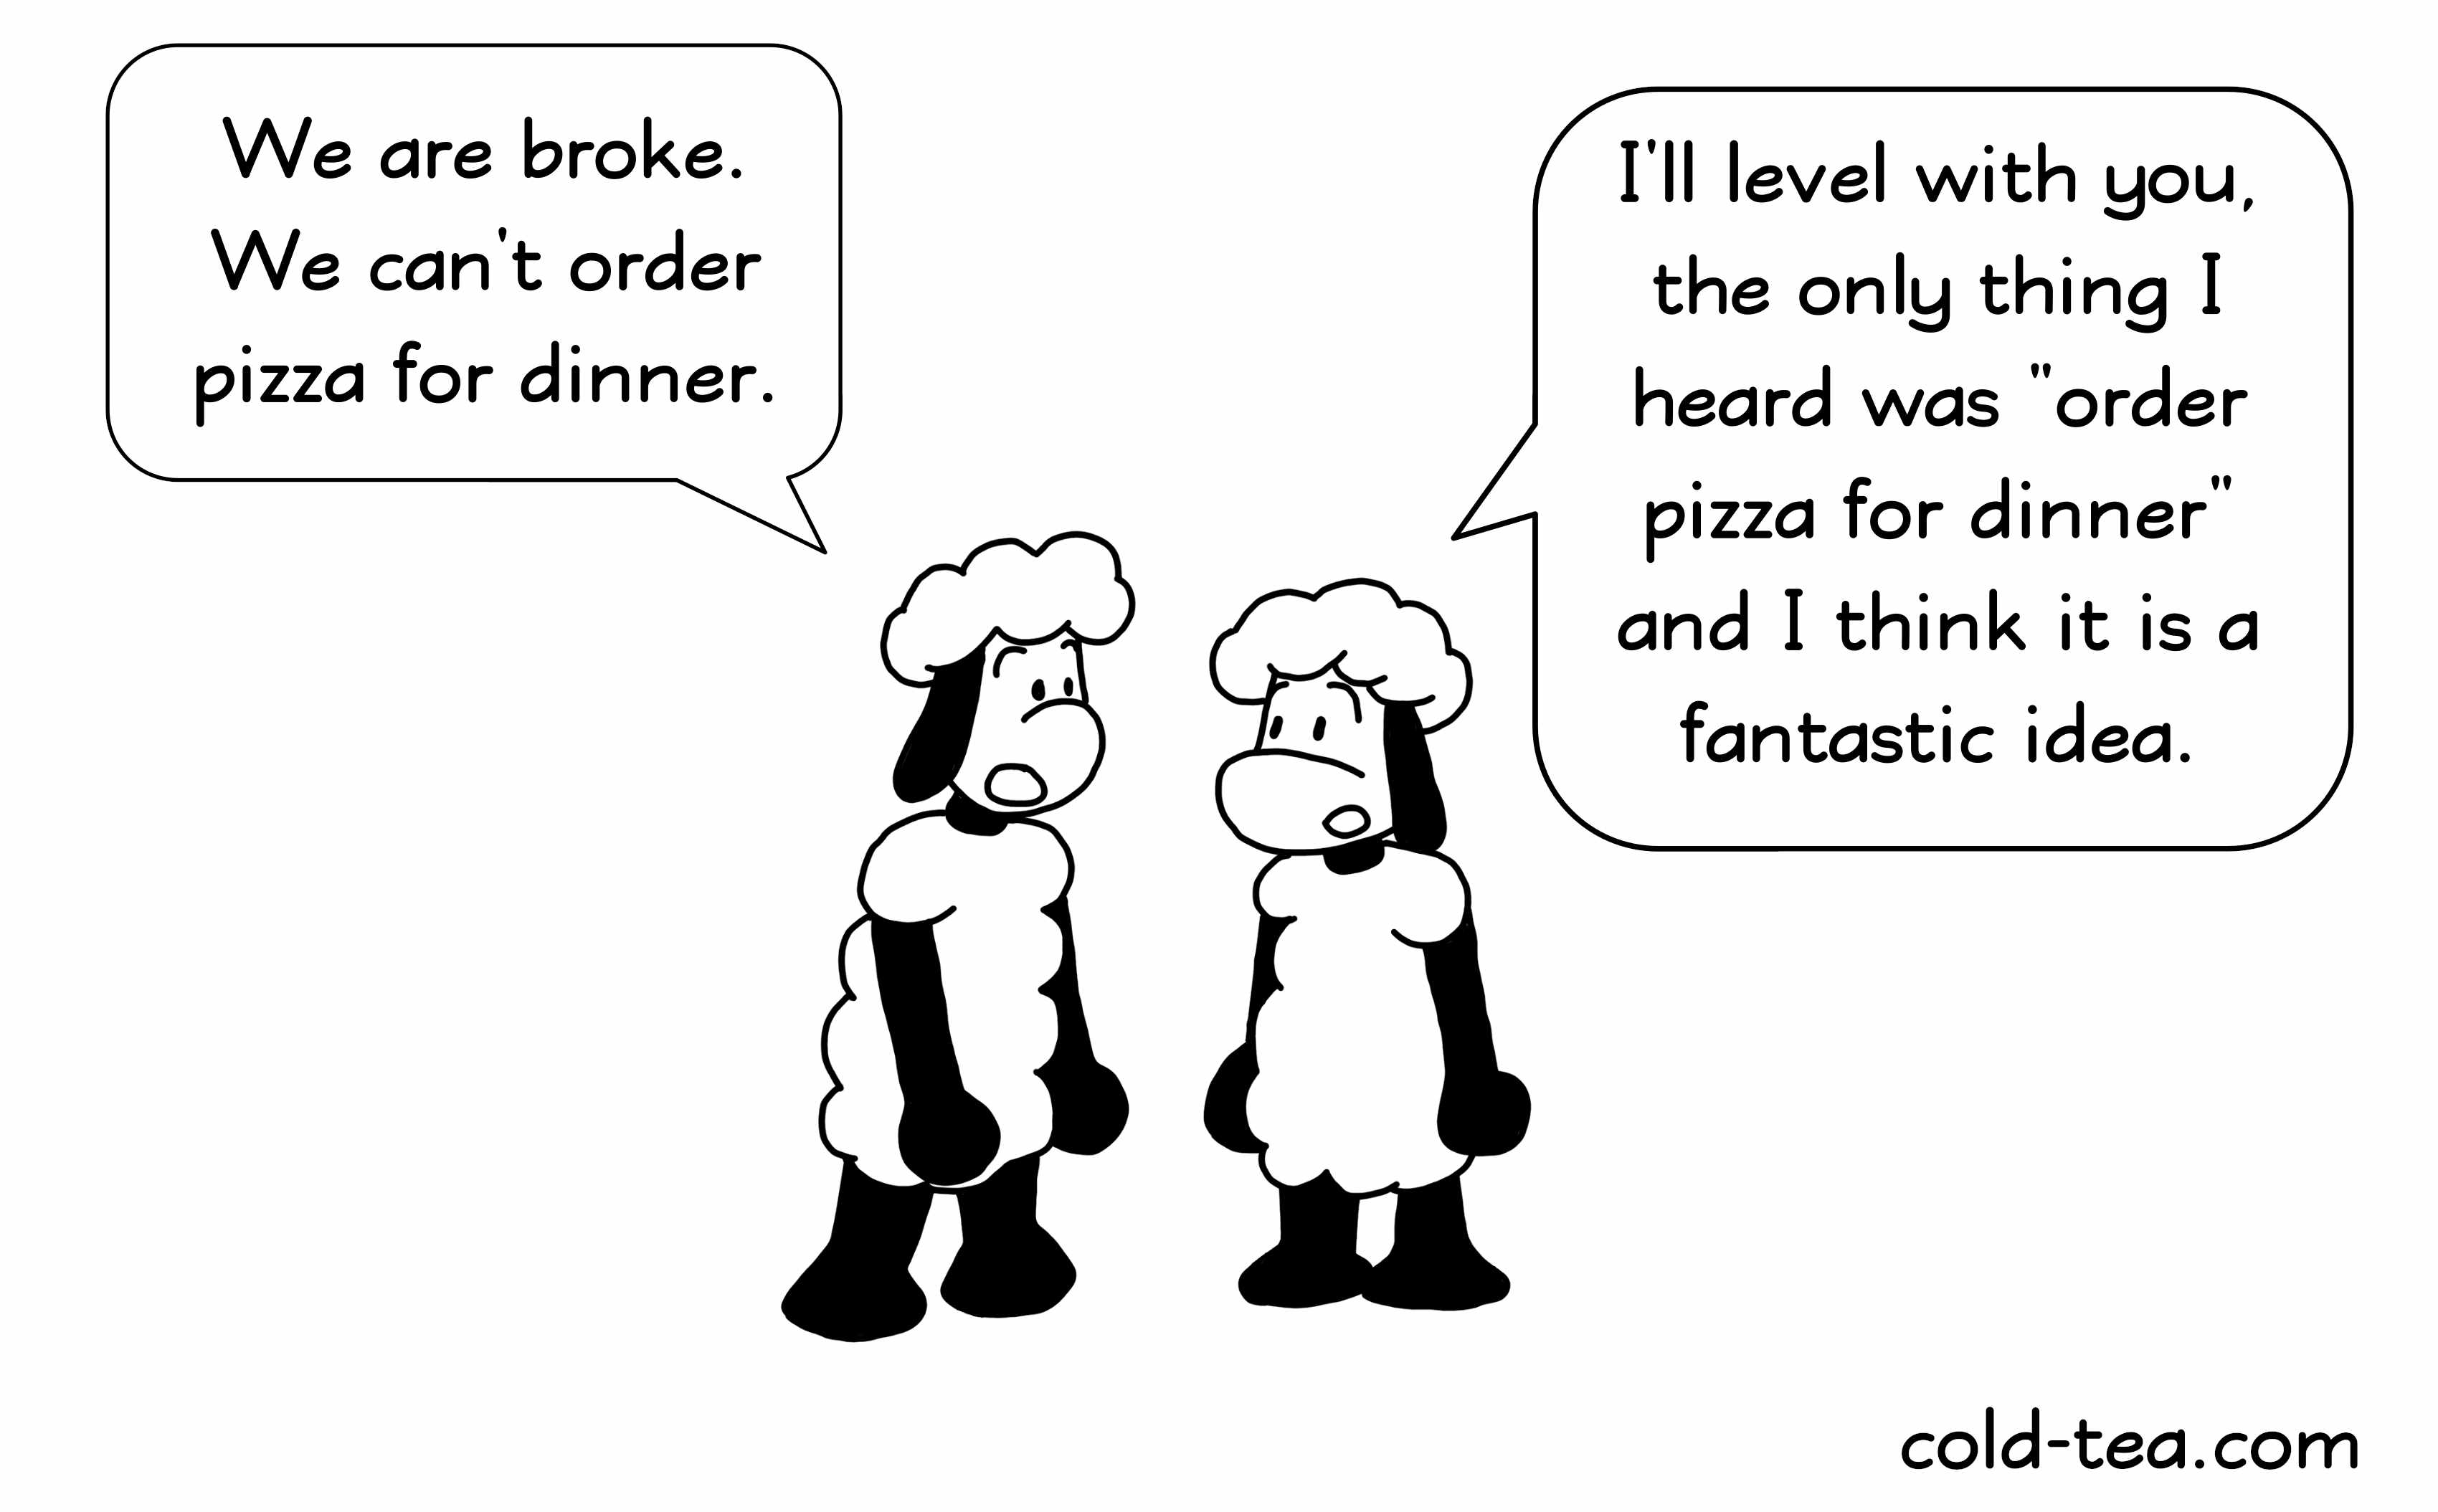 Ordering pizza sheep comic